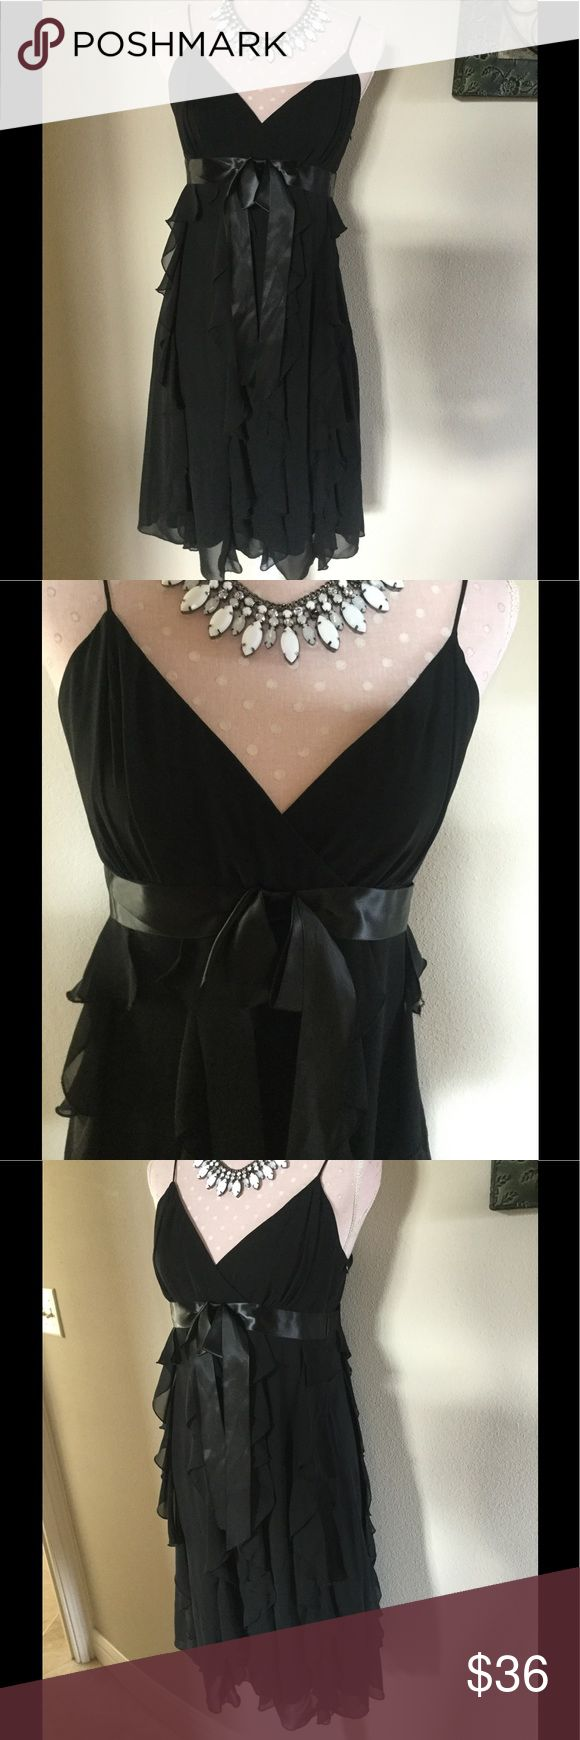 Scarlett Black Ruffled Tiered Dress Size 8 Scarlett Black Ruffled Tiered Dress Size 8 side Zipper EUC Darin bow attached in the center front Scarlett Dresses